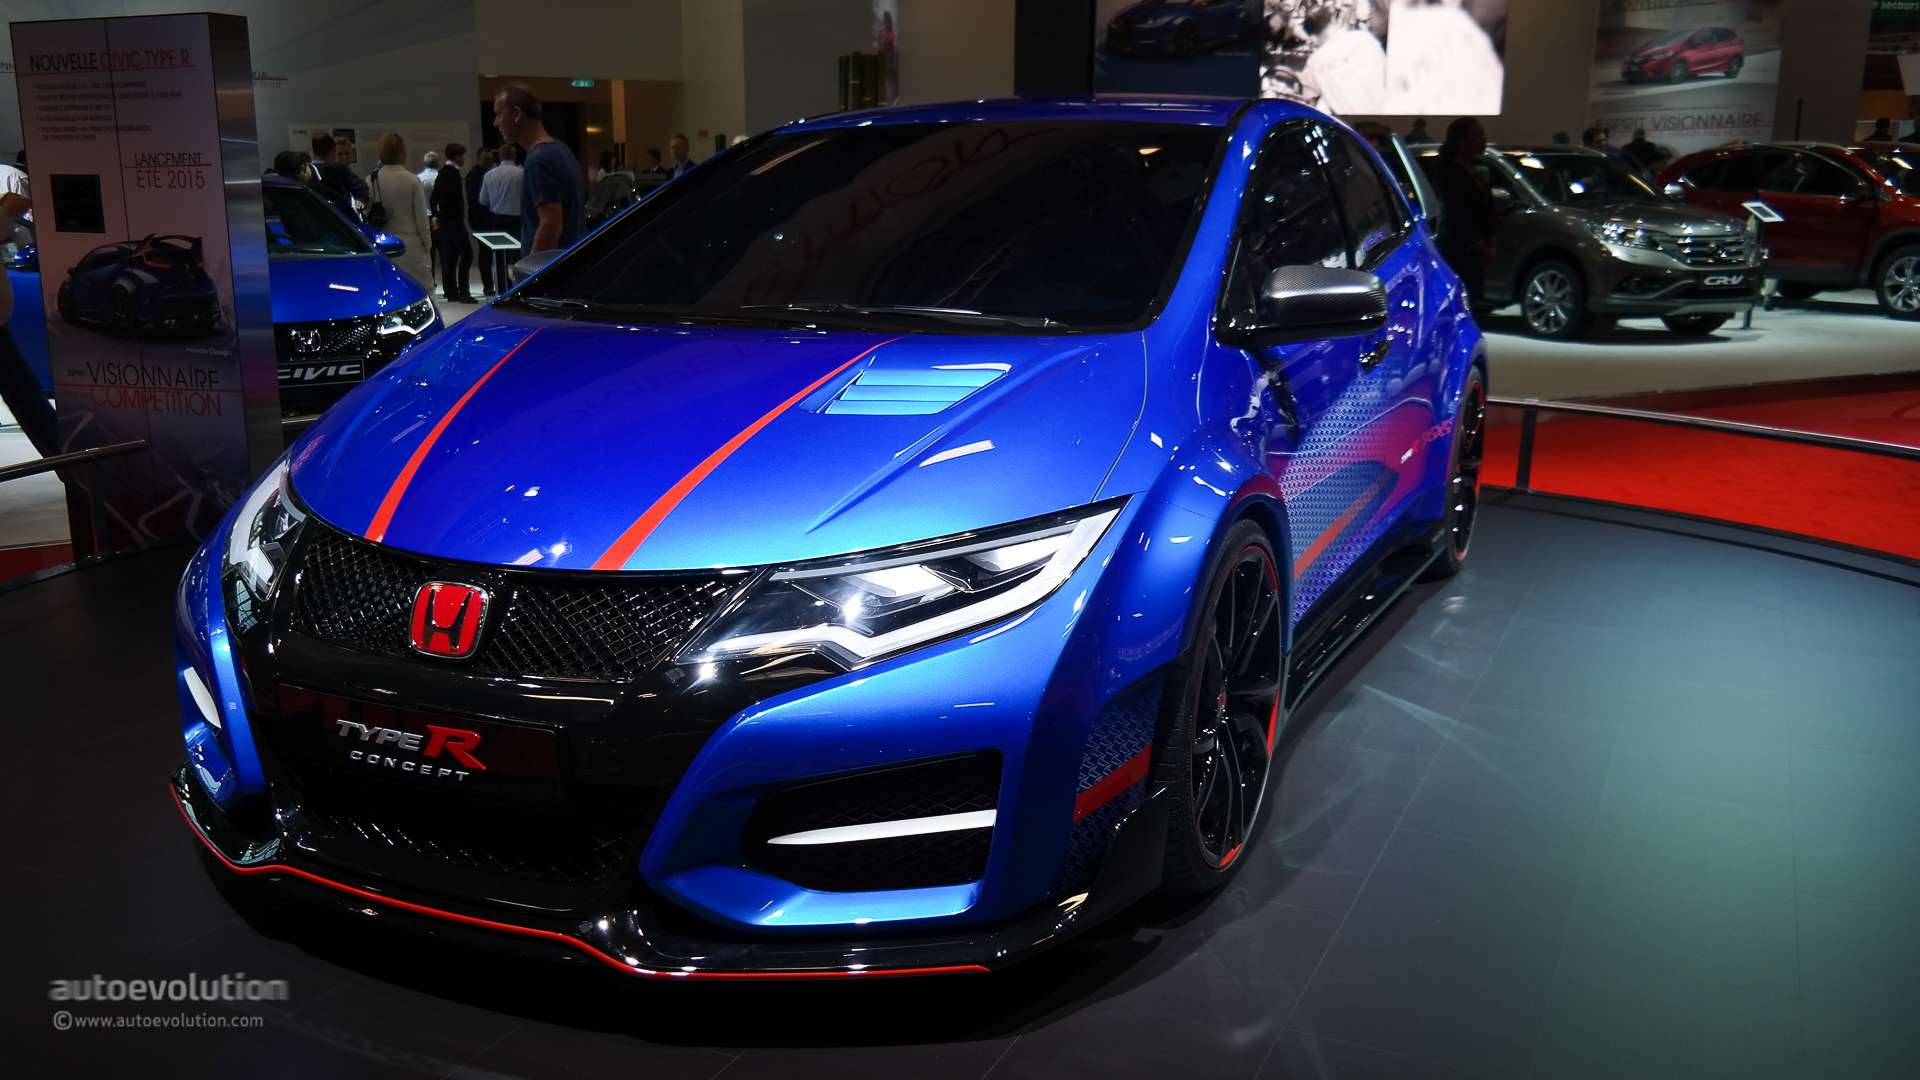 Honda Civic Type R Concept Ii Looks Awesome In Paris